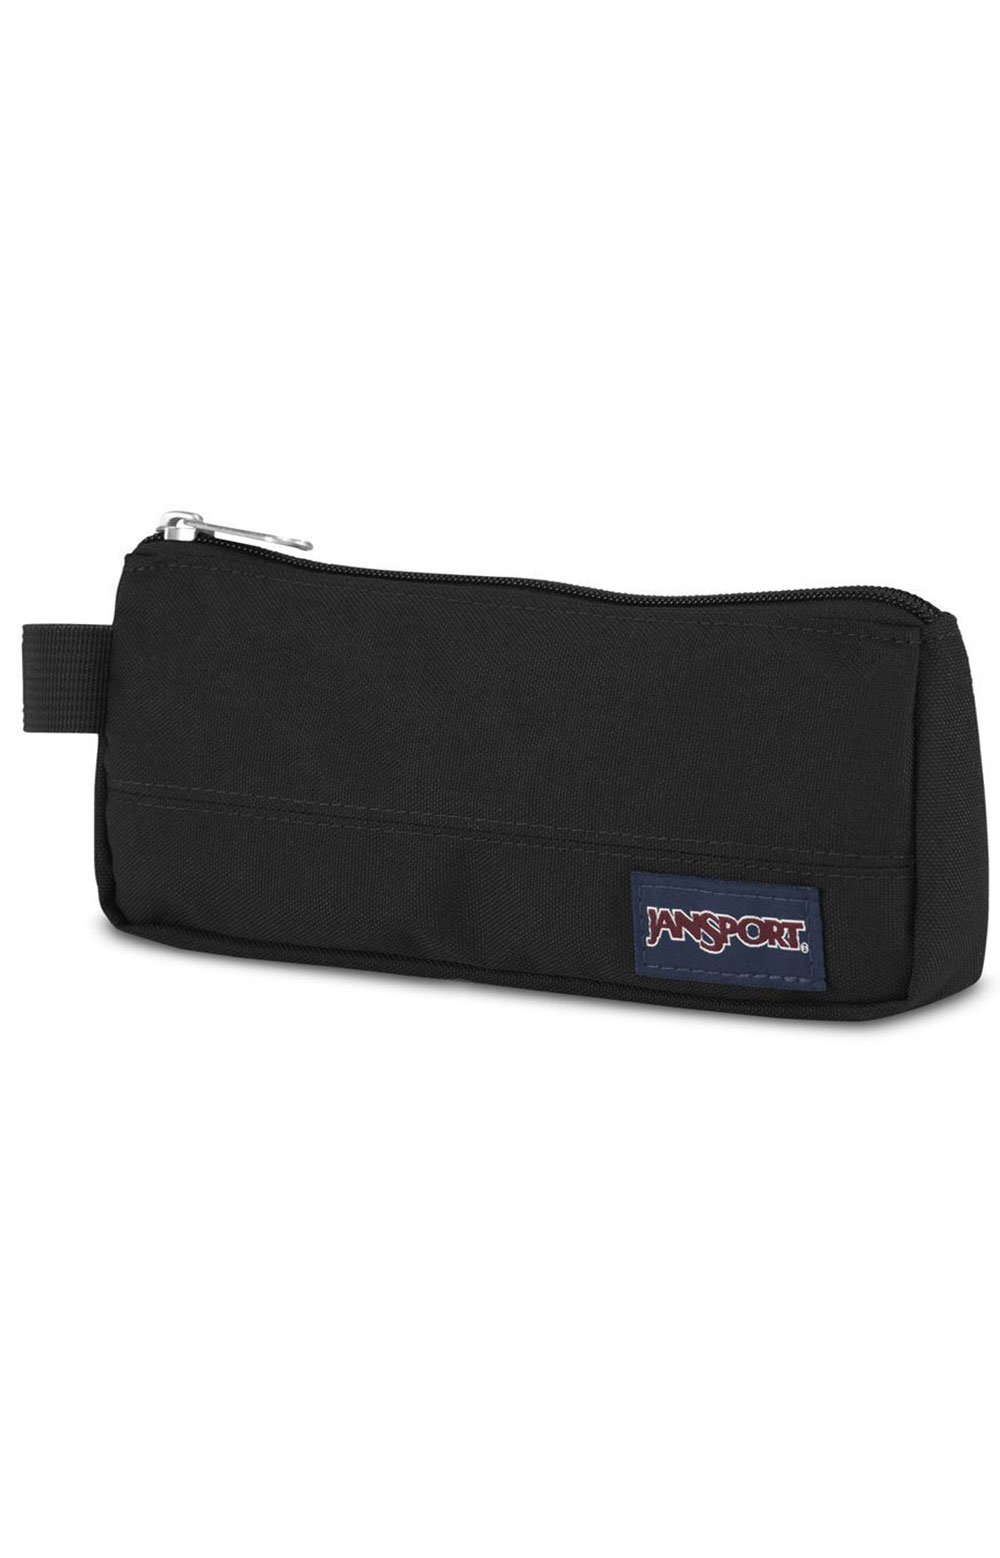 Basic Accessory Pouch - Black 2